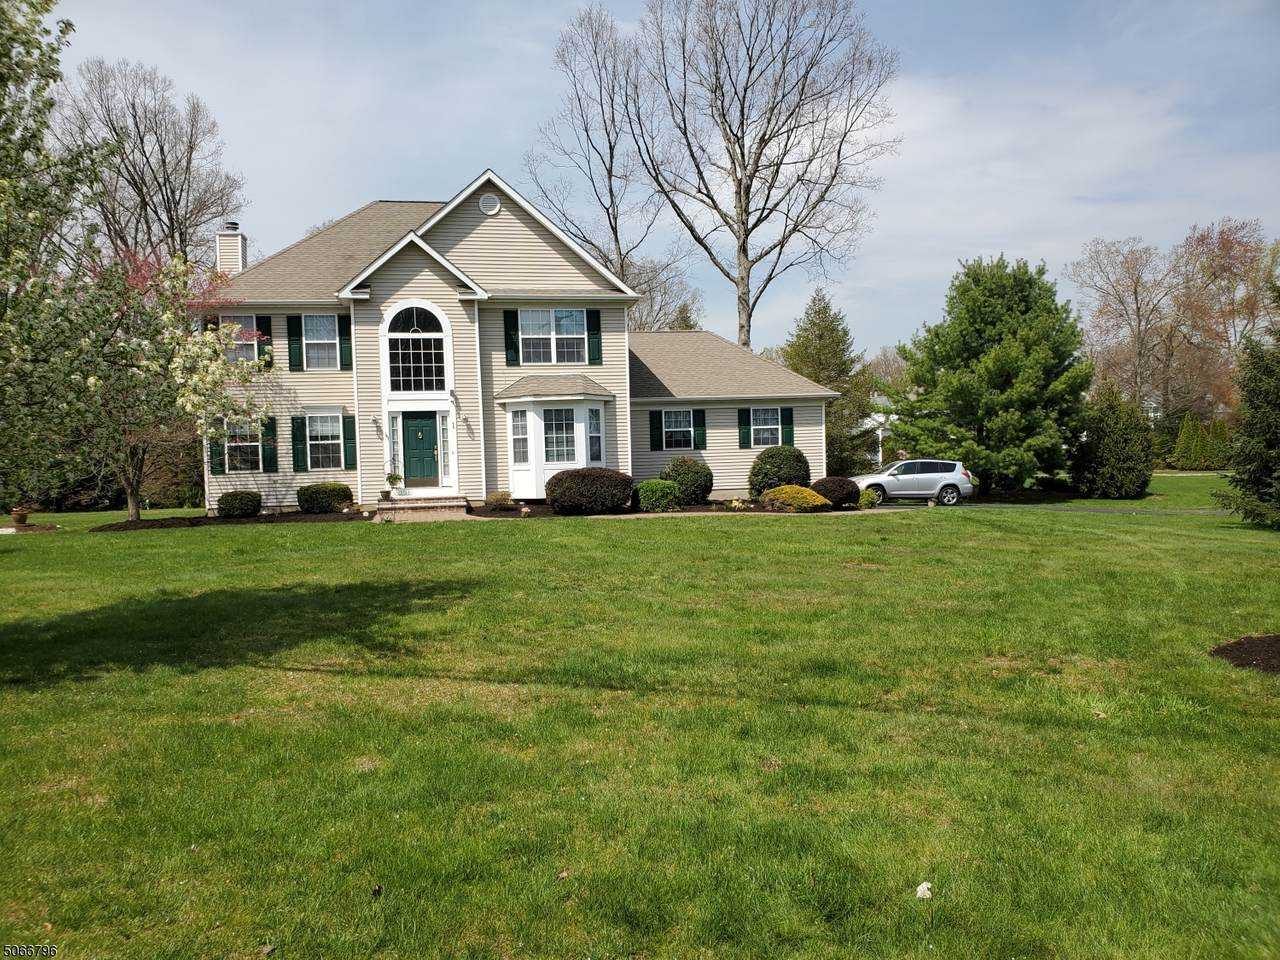 1 Quincy Dr - Photo 1